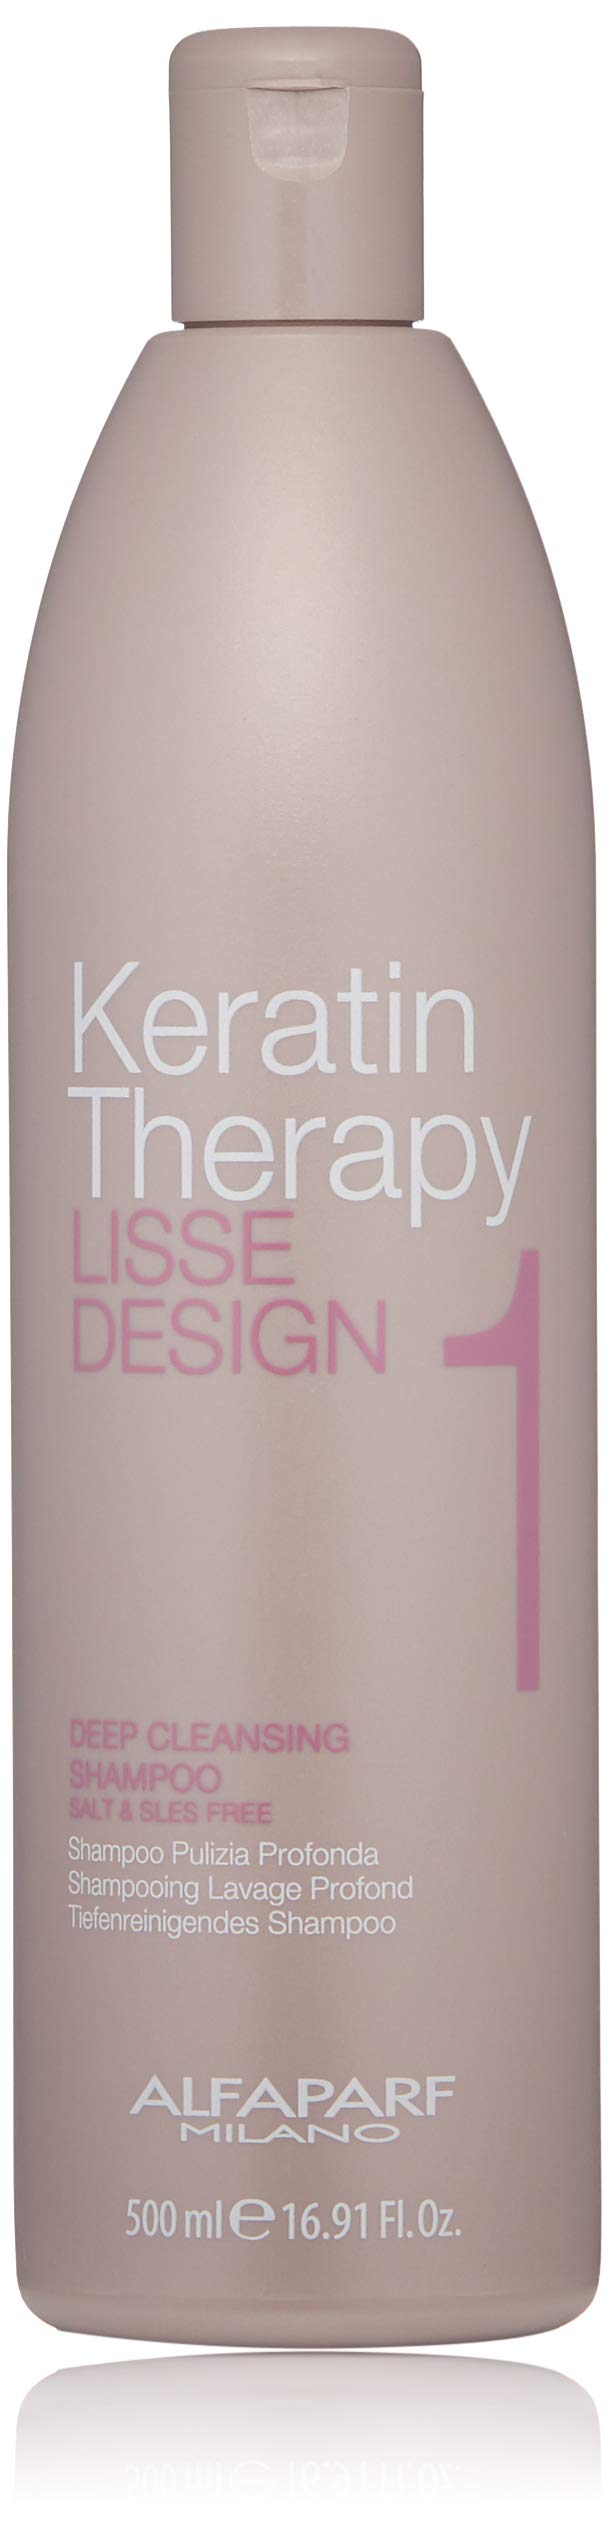 Alfaparf Milano Keratin Therapy Lisse Design Deep Cleansing Shampoo - Detangles, Opens Cuticles - Prepares Hair for Smoothing Treatment - Professional Salon Quality - 16.91 Fl Oz